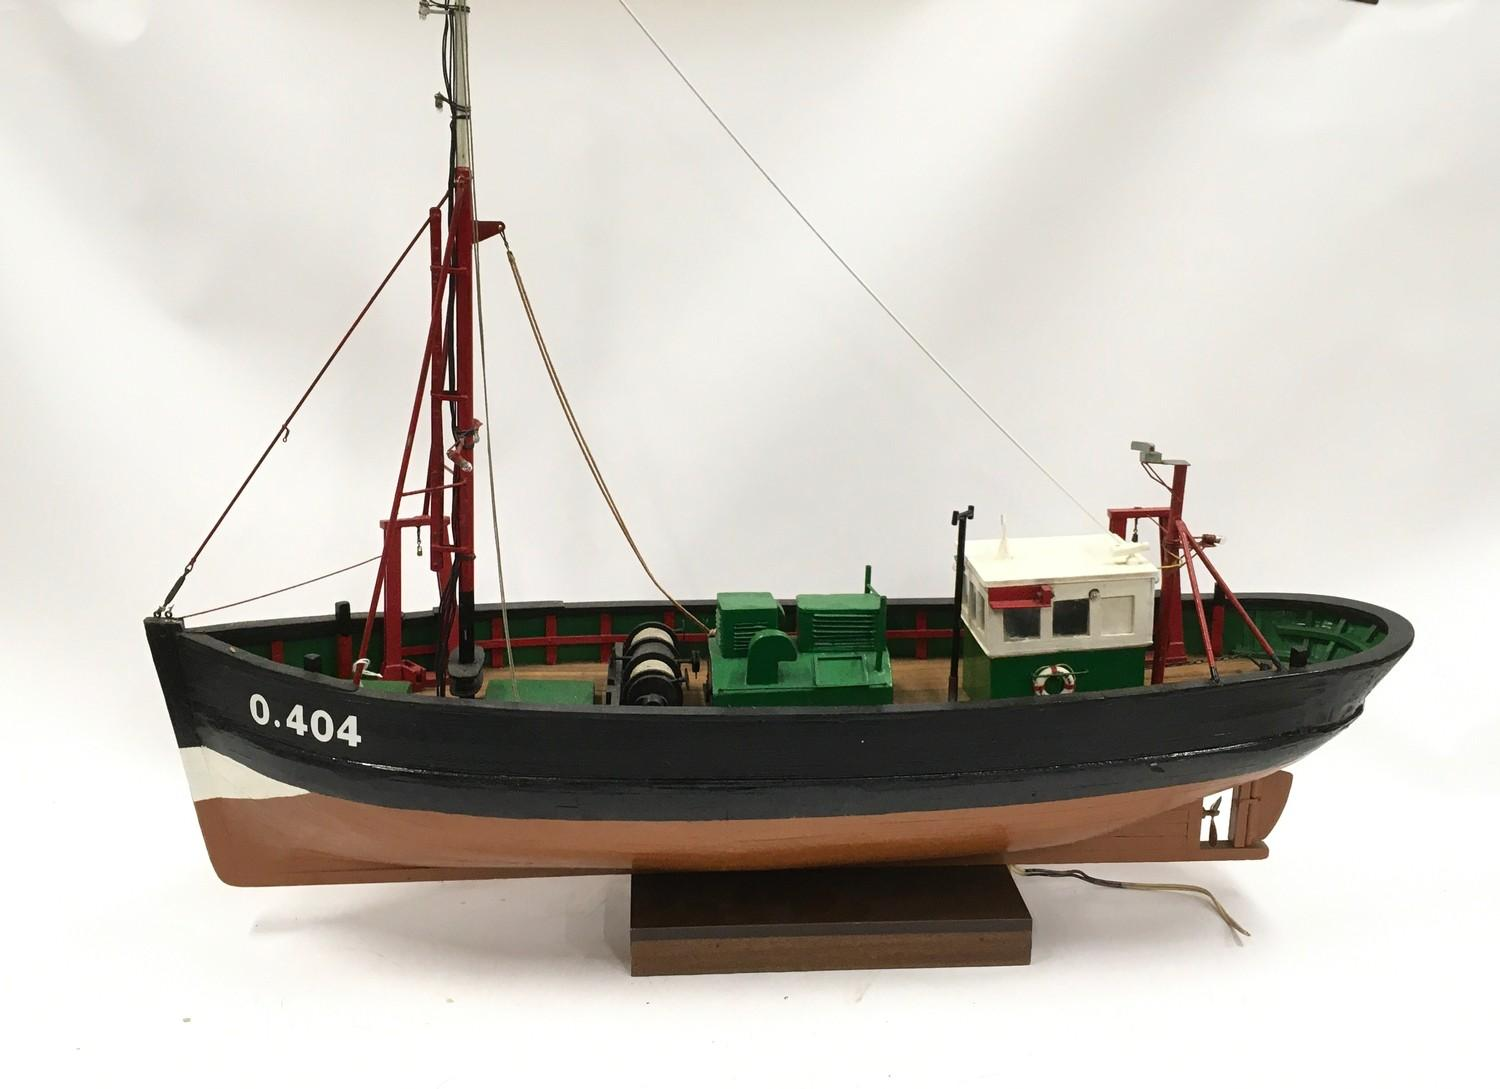 Wooden model of a boat.